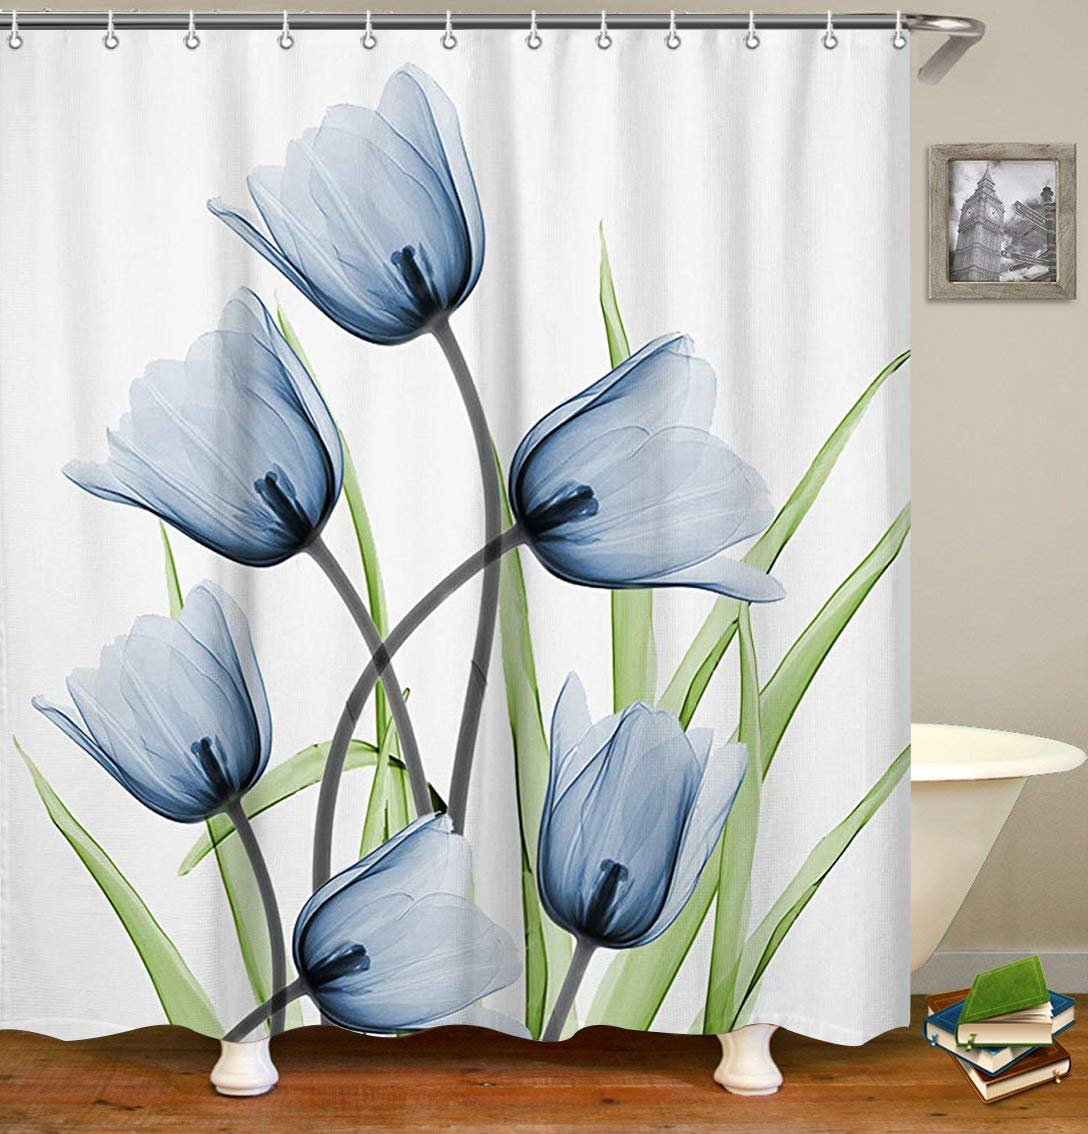 Livilan Romantic Floral Fabric Shower Curtain 72 x 72 inch for Bathroom,Waterproof Mold Mildew Resistant Thick Shower Curtains with Stainless Steel Rings,Light Blue Dynabit